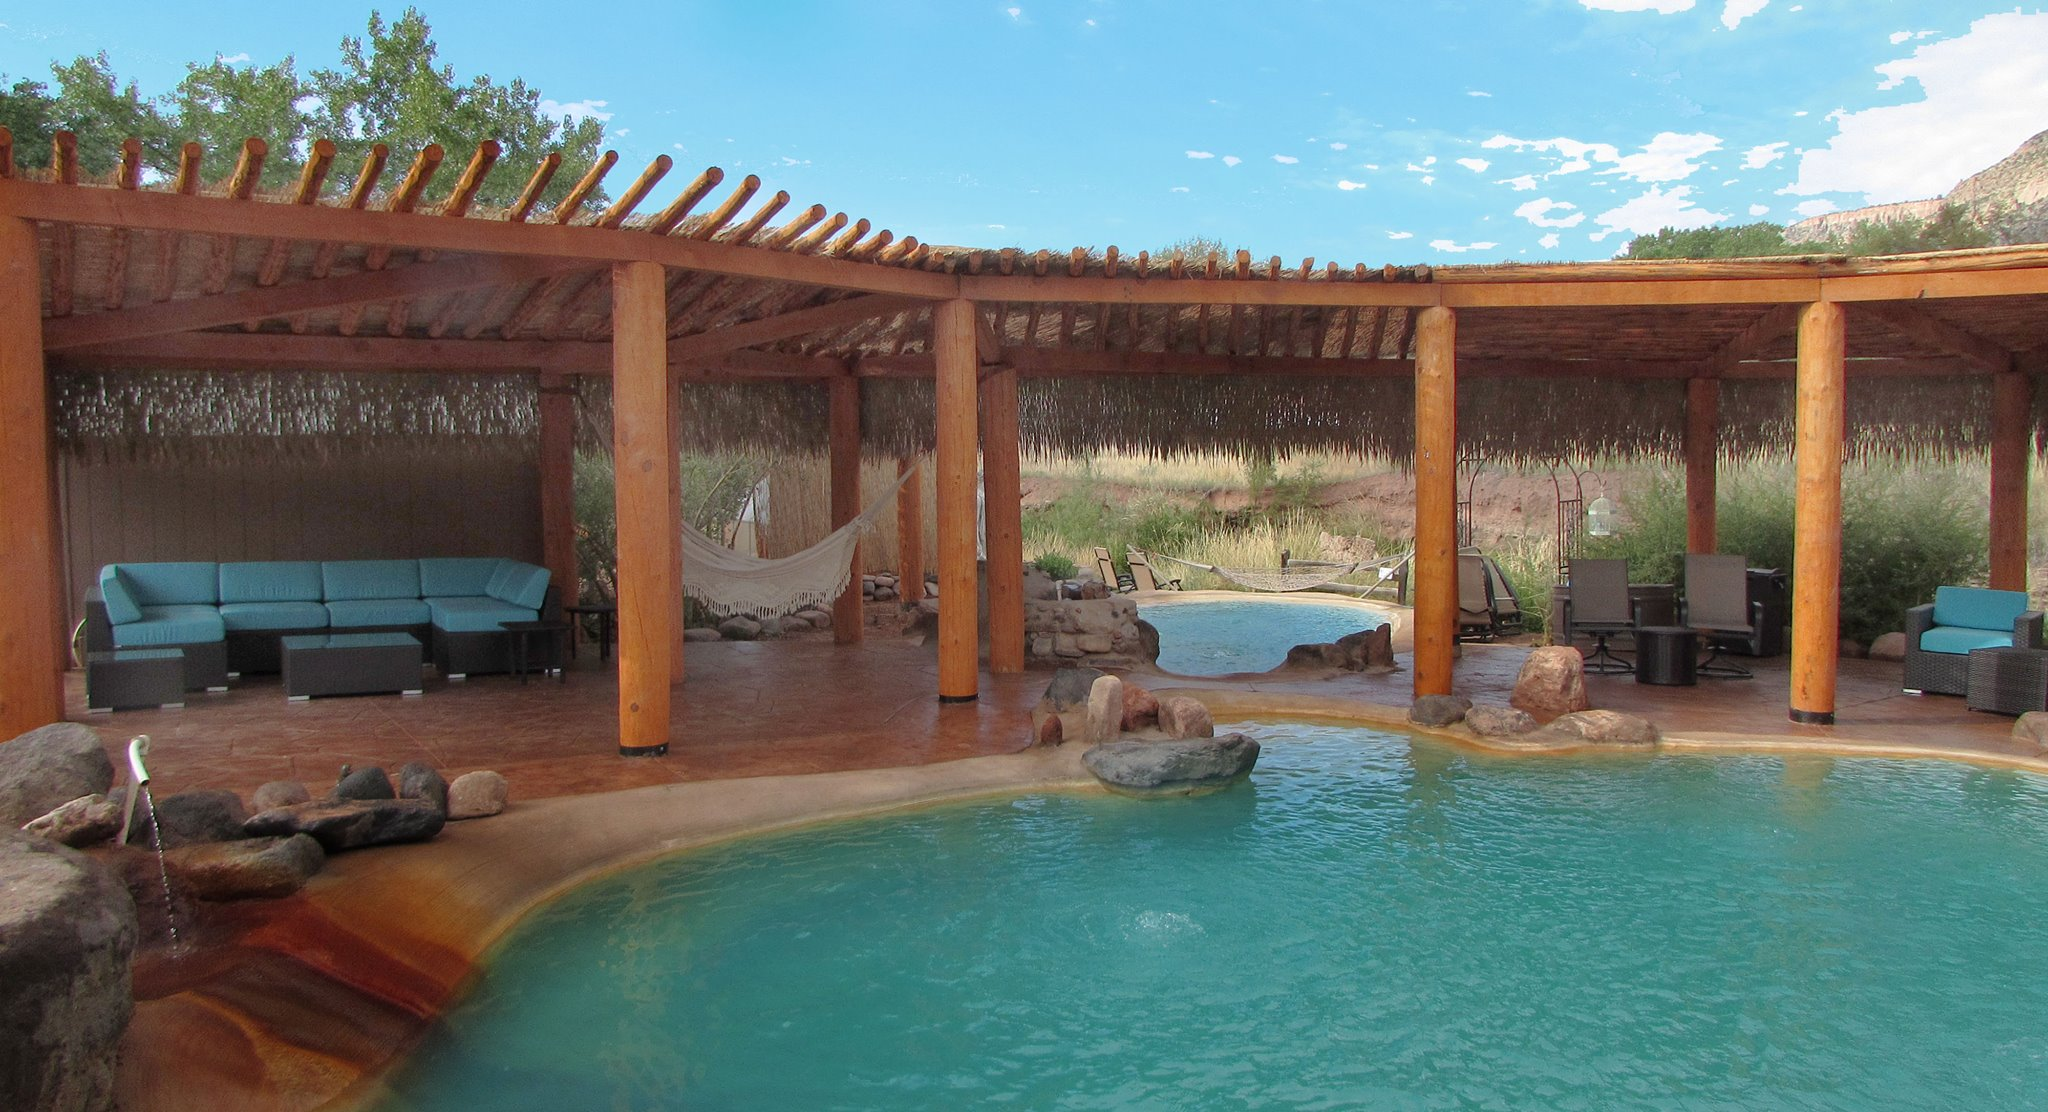 Soak at Jemez Hot Springs - Home of Giggling Springs, a day trip from Albuquerque